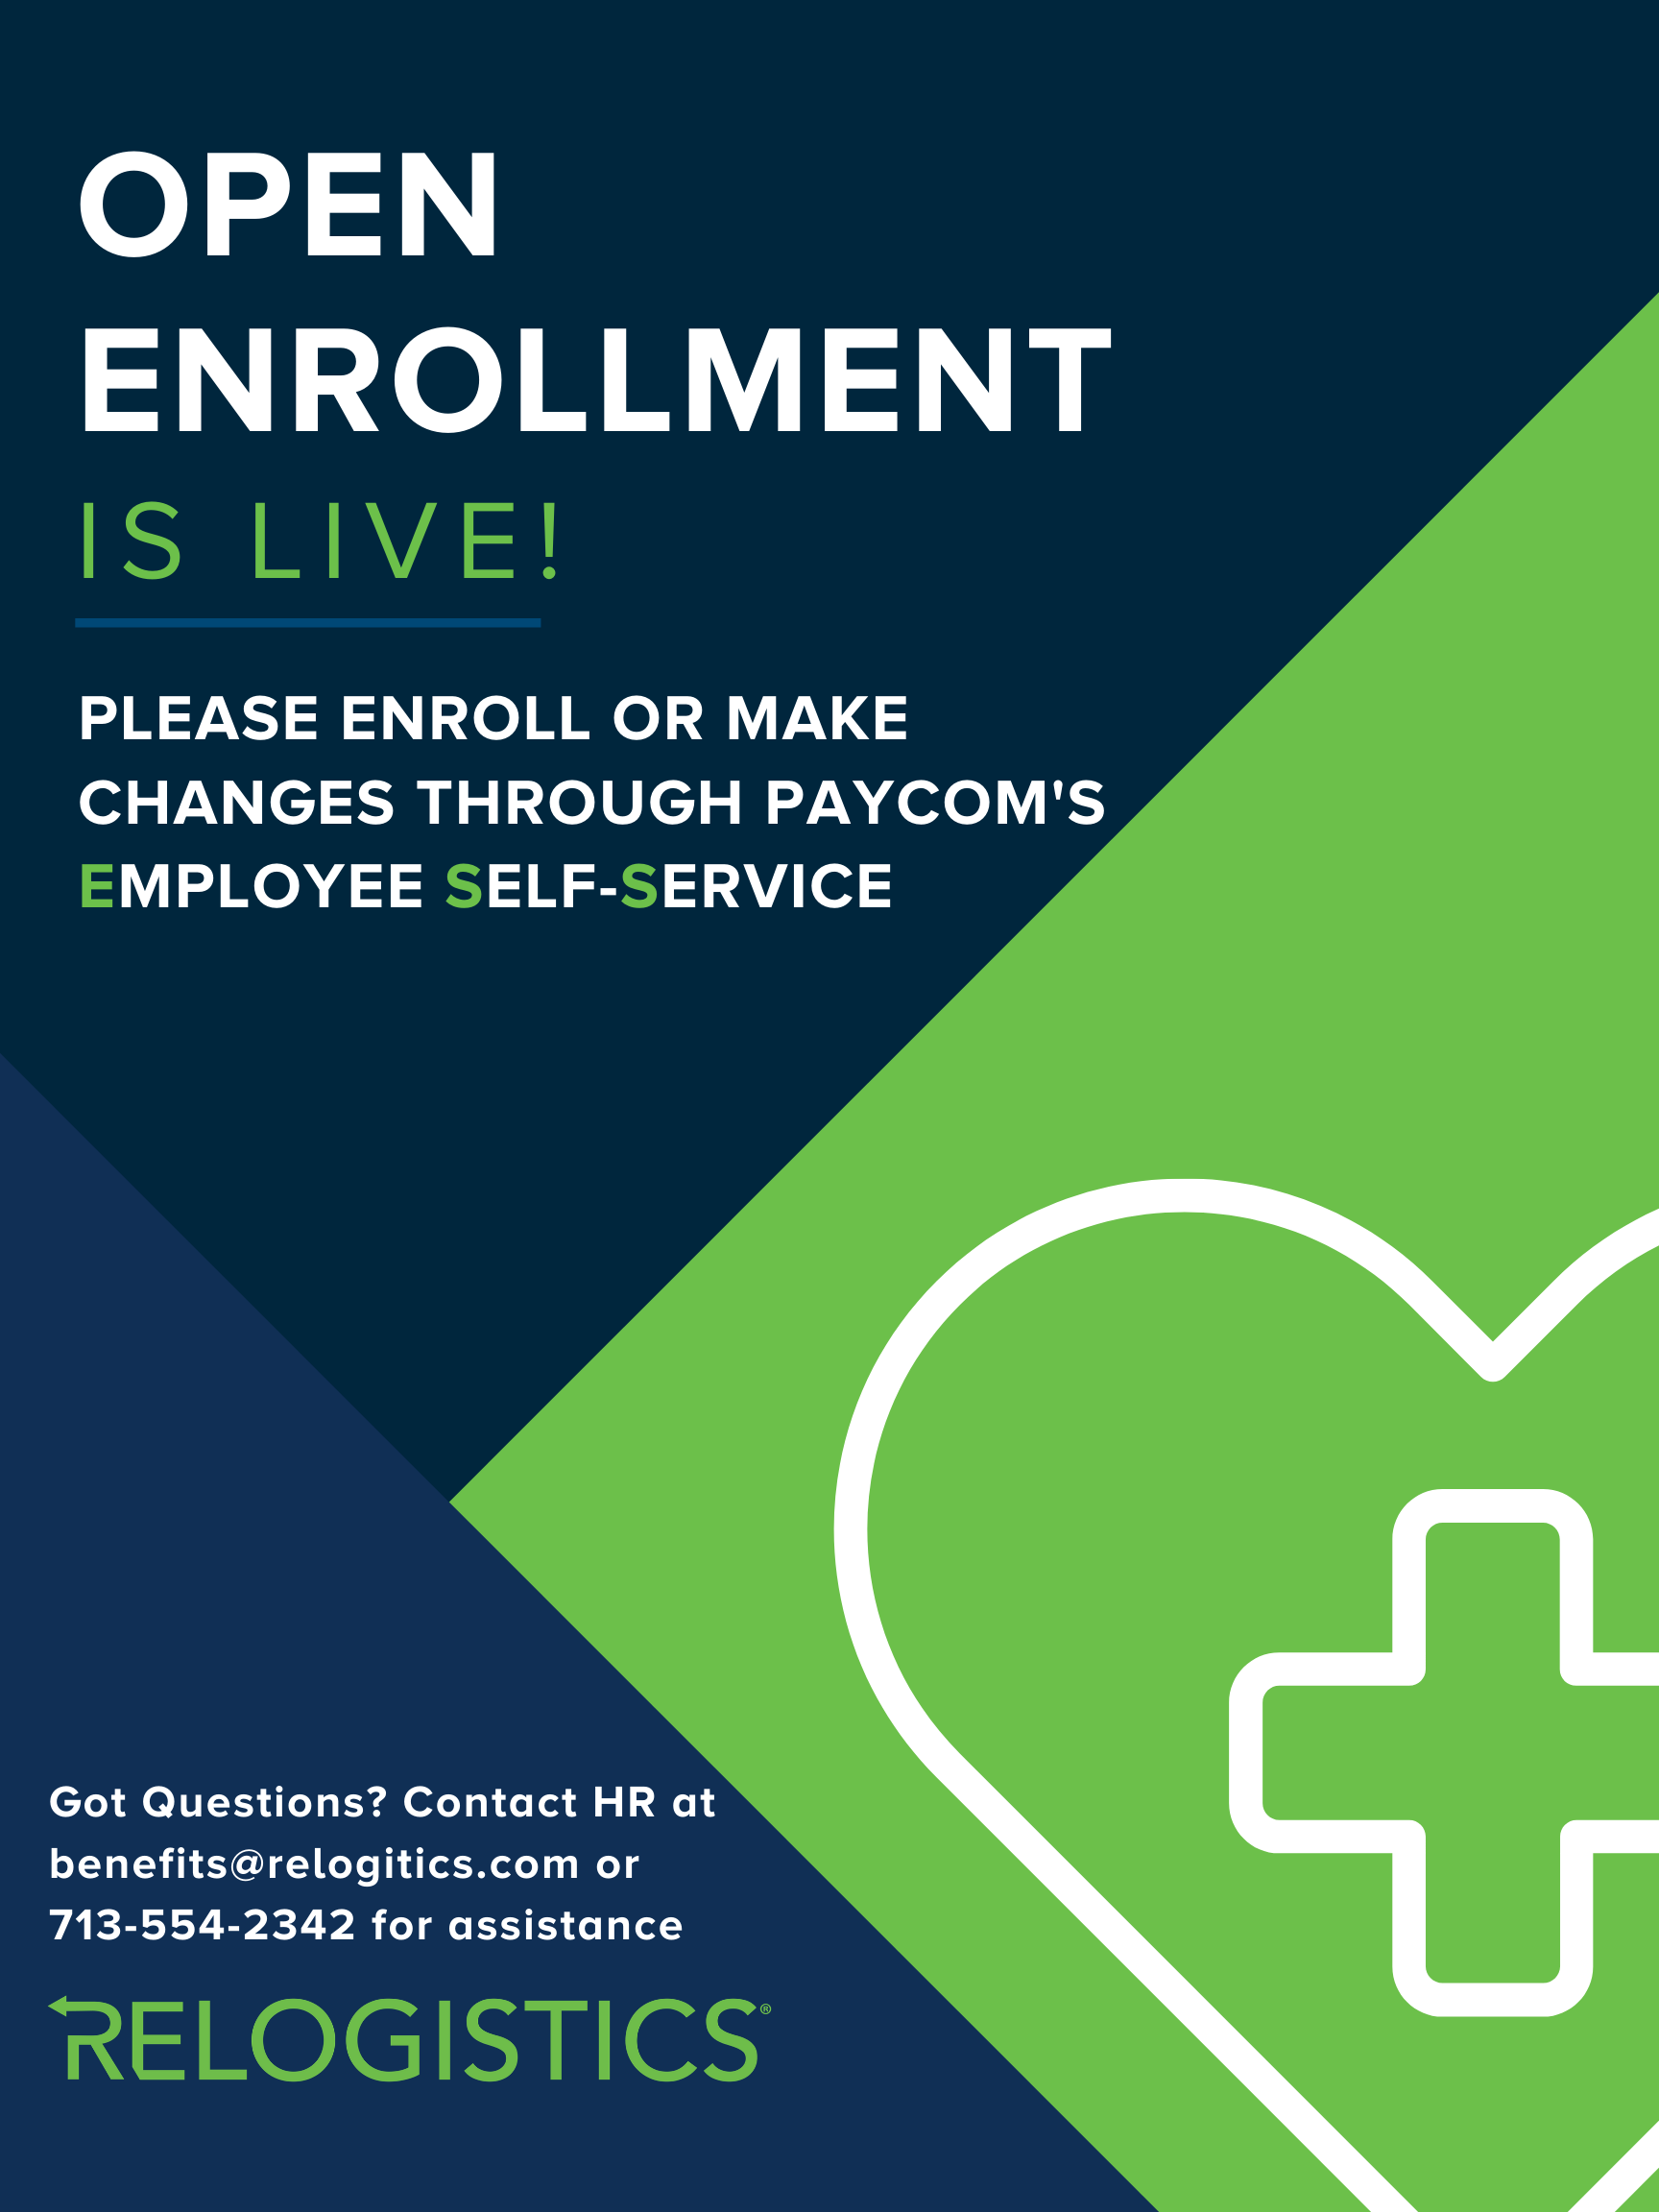 Open Enrollment Poster